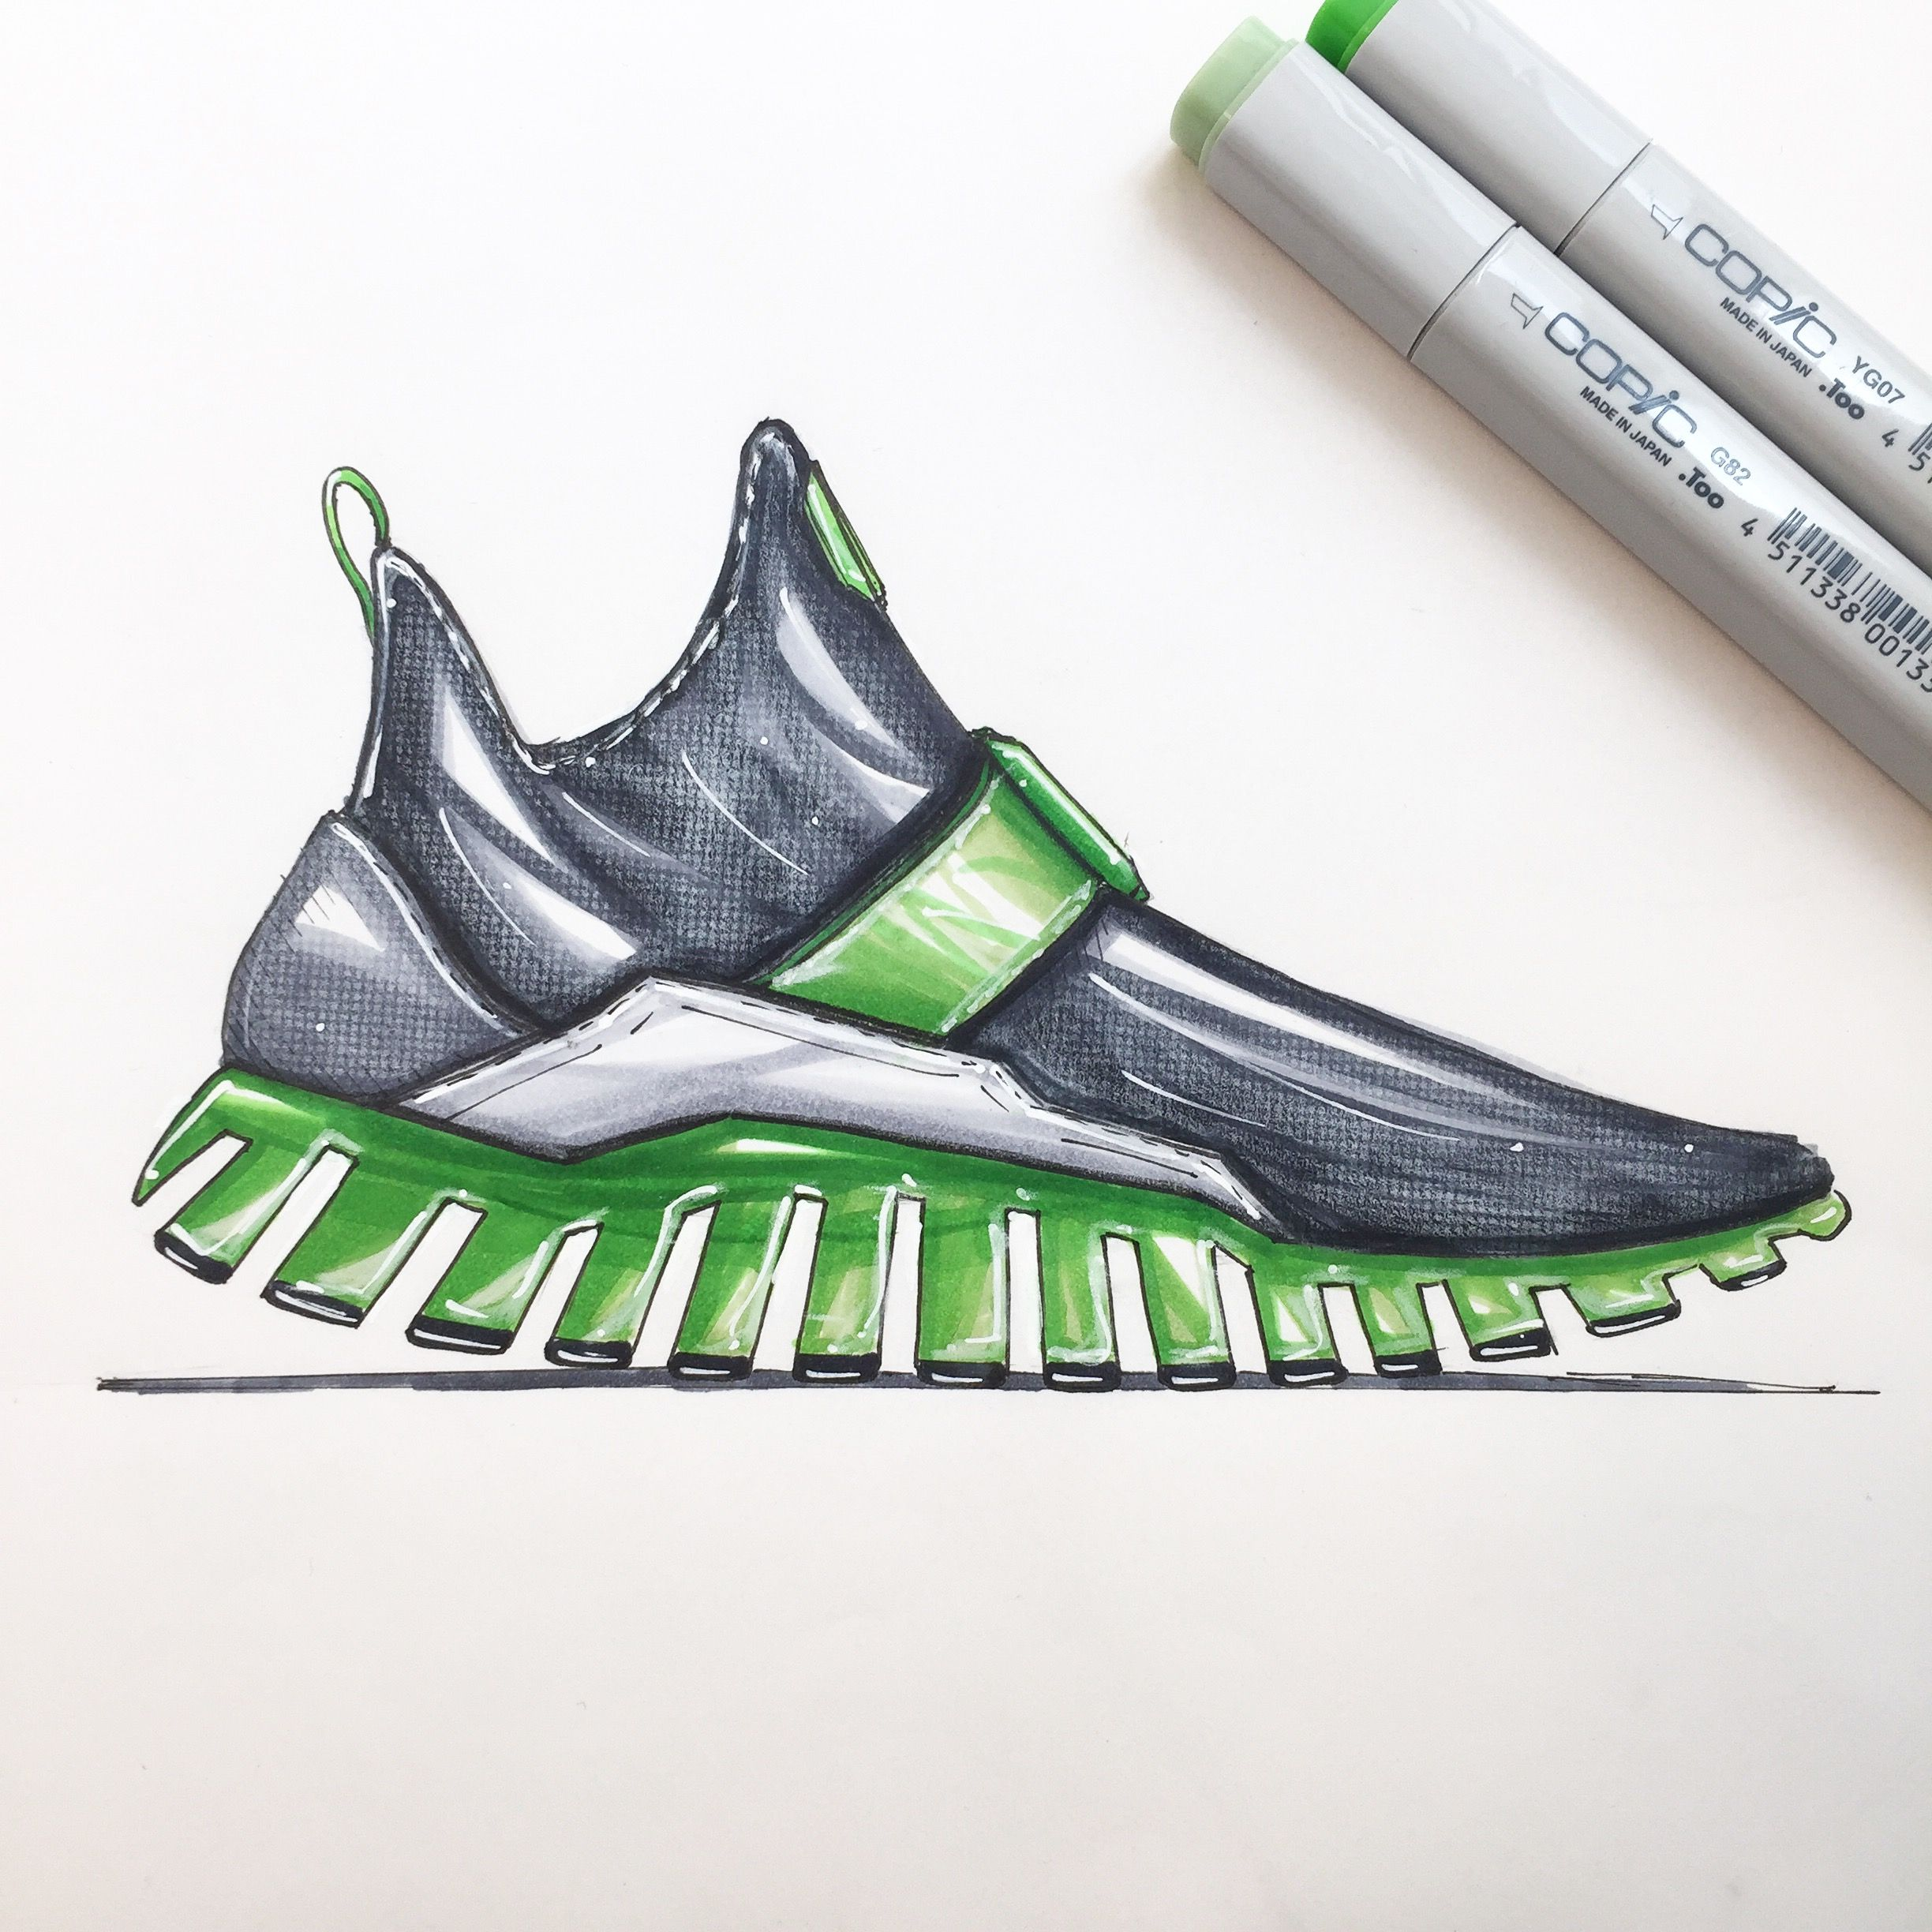 adidas sneaker concept | Shoes design | Pinterest | Adidas, Footwear and  Fashion